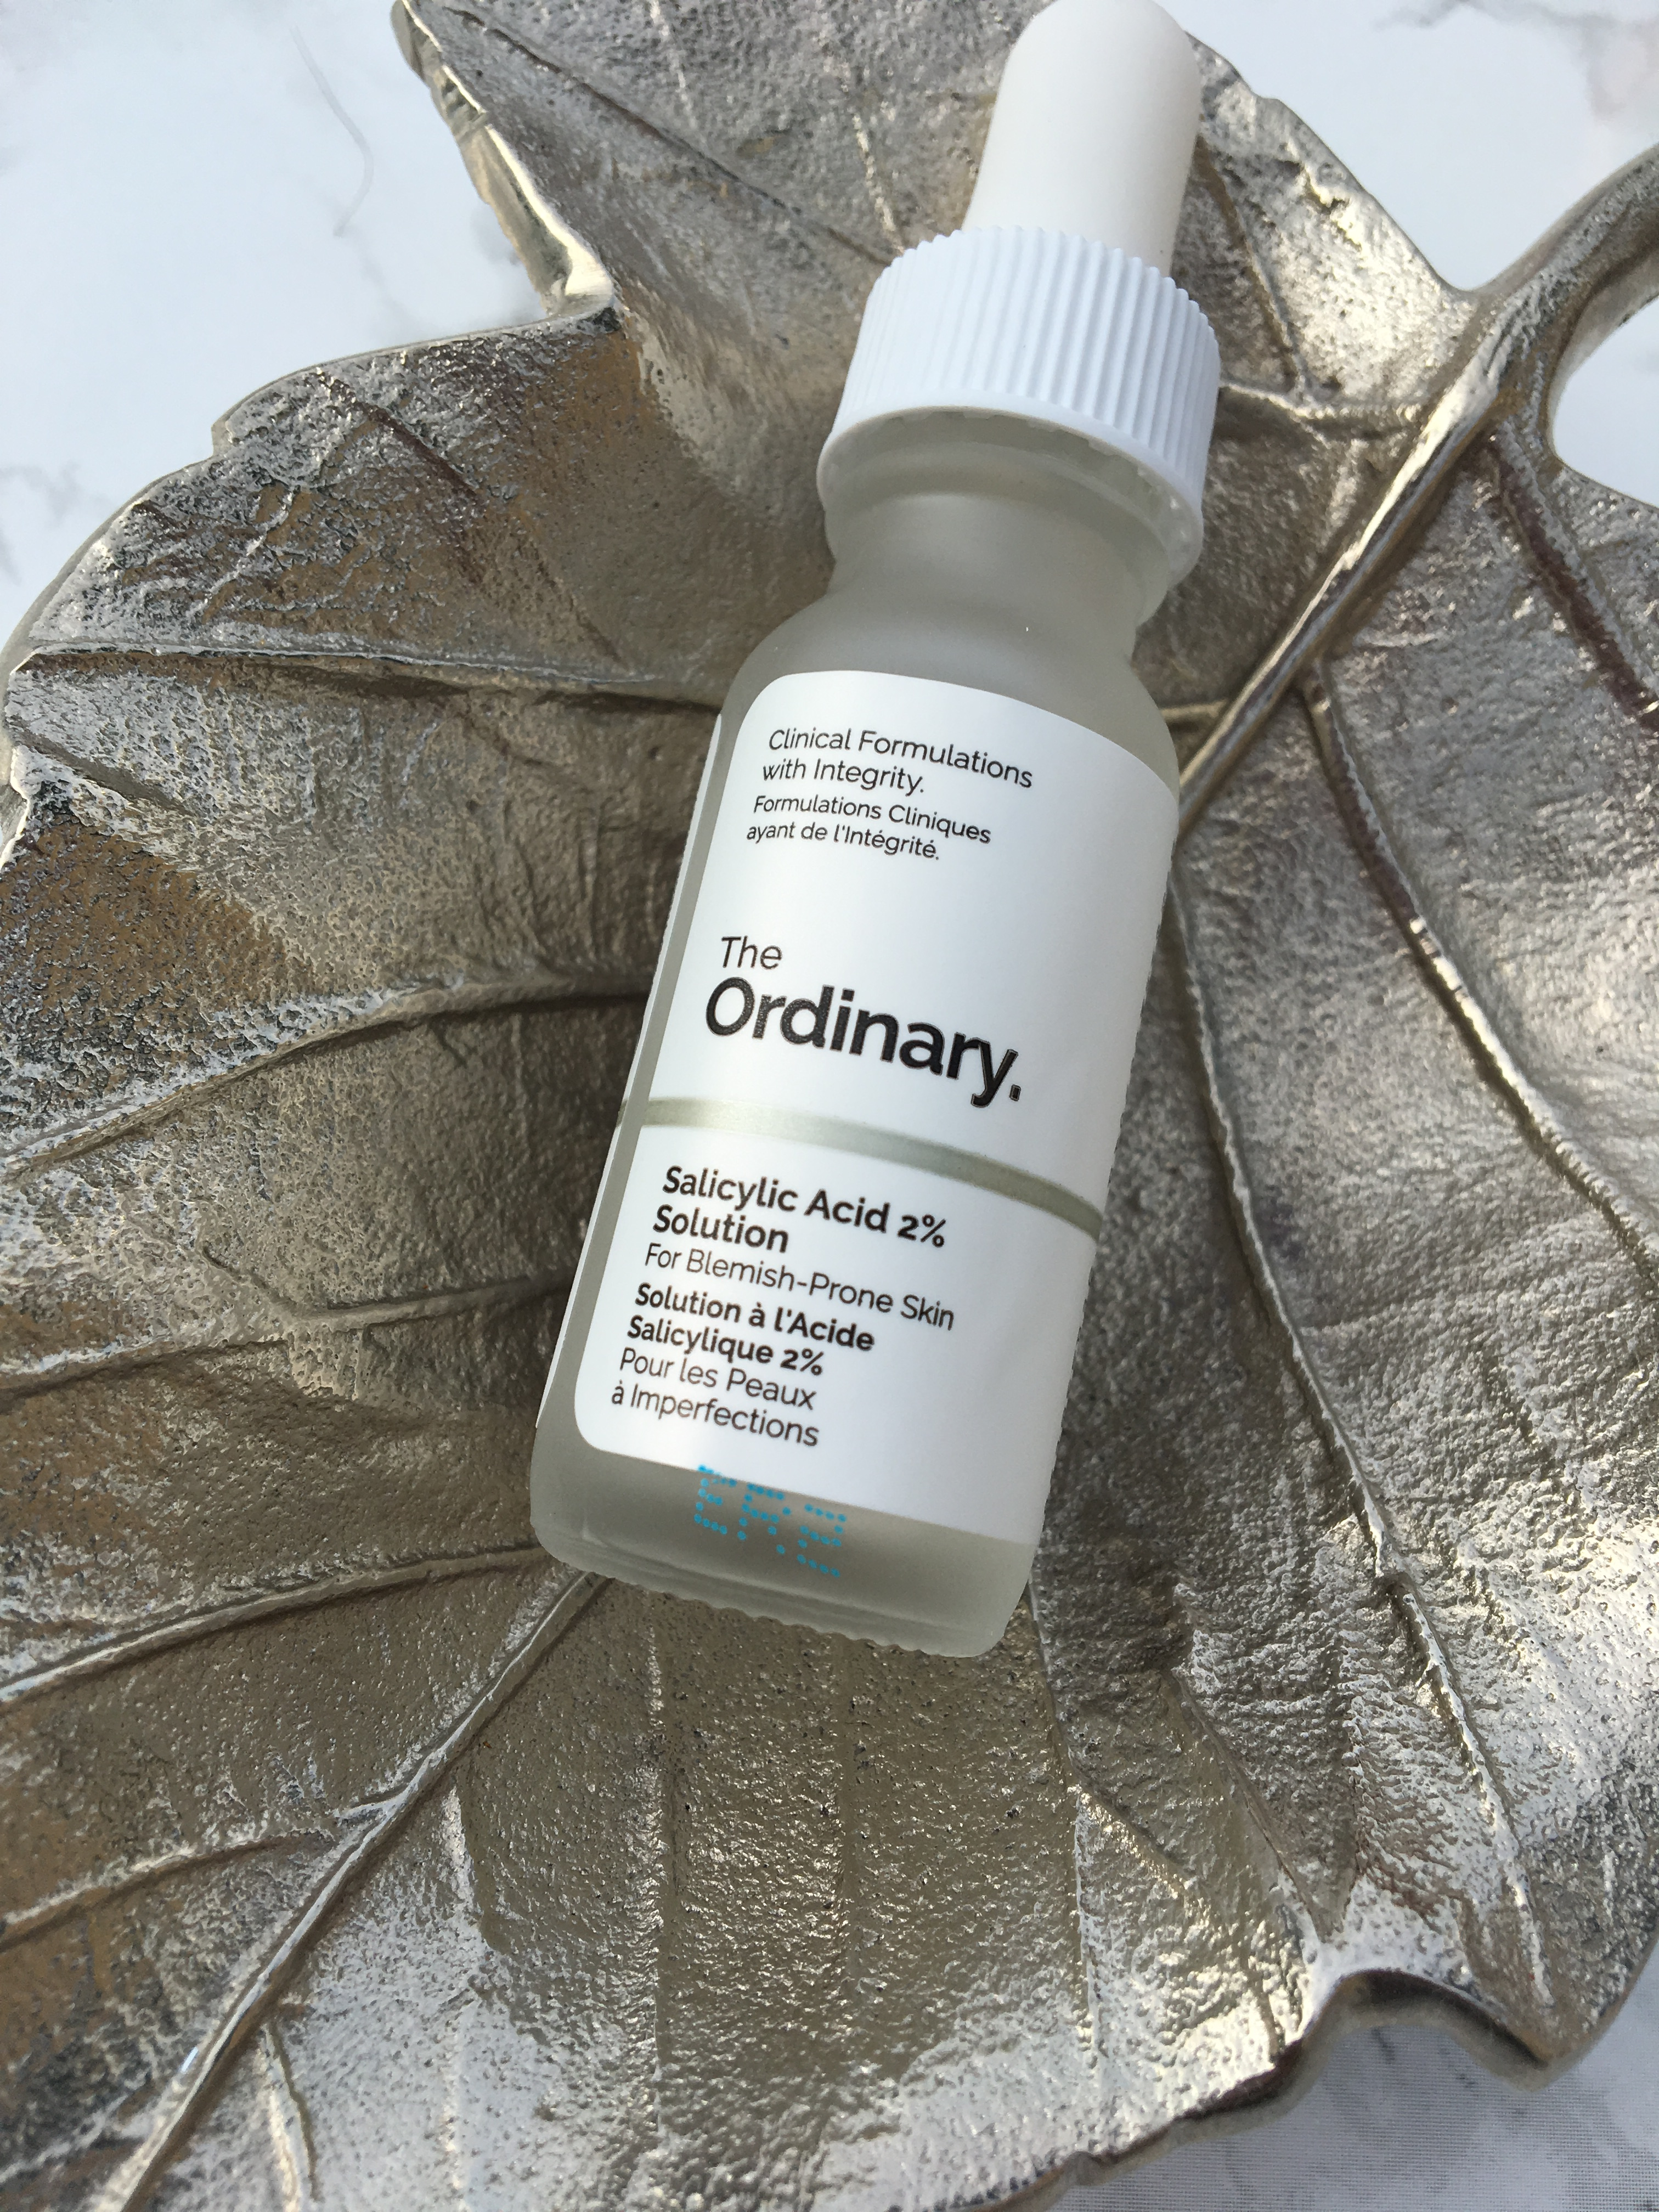 The Ordinary salicylic acid